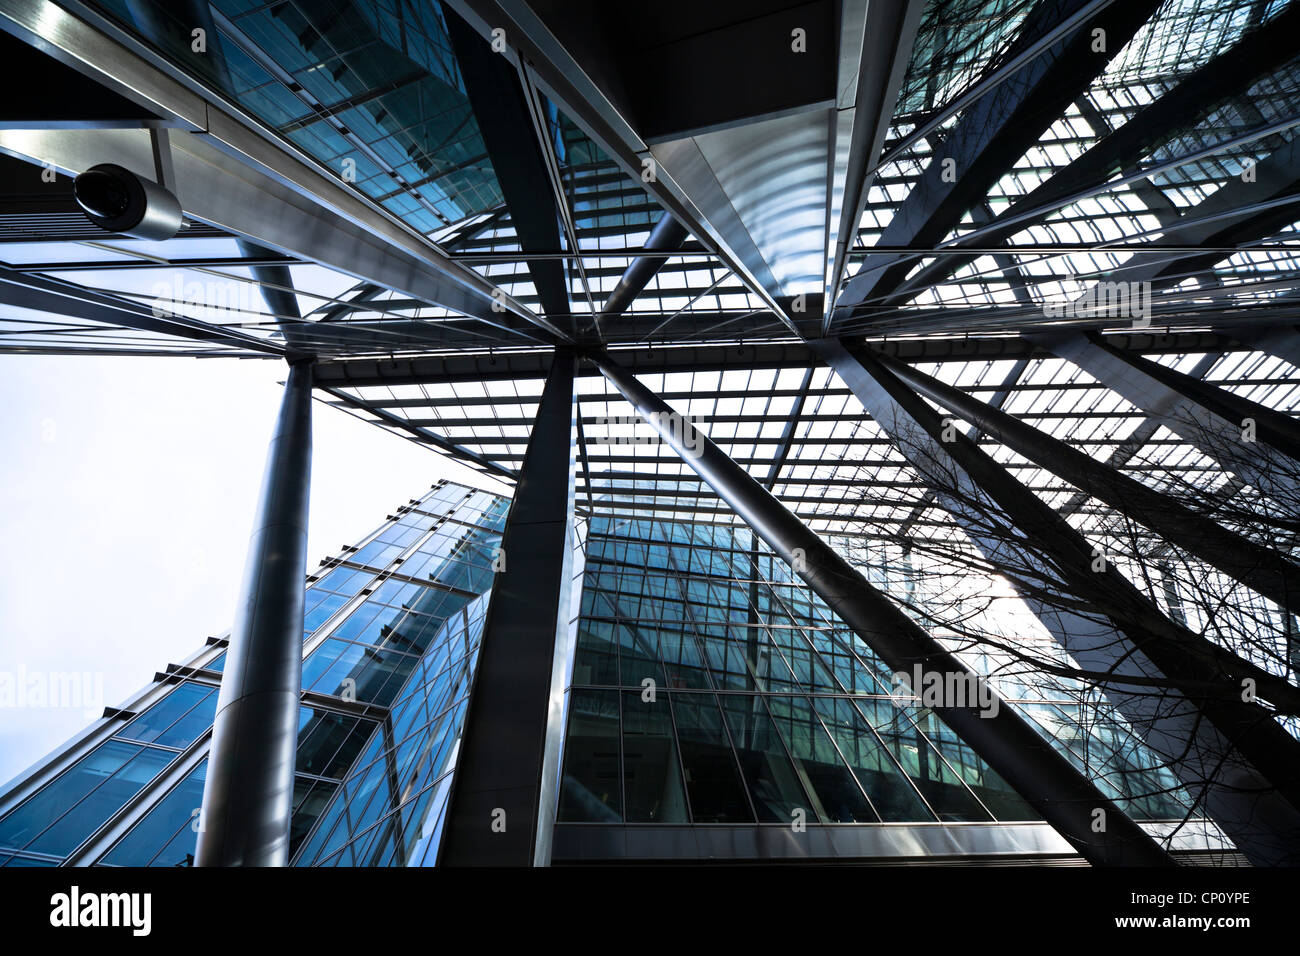 Reflections and patterns formed by modern architecture in the Broadgate Tower, Bishopsgate, London - Stock Image